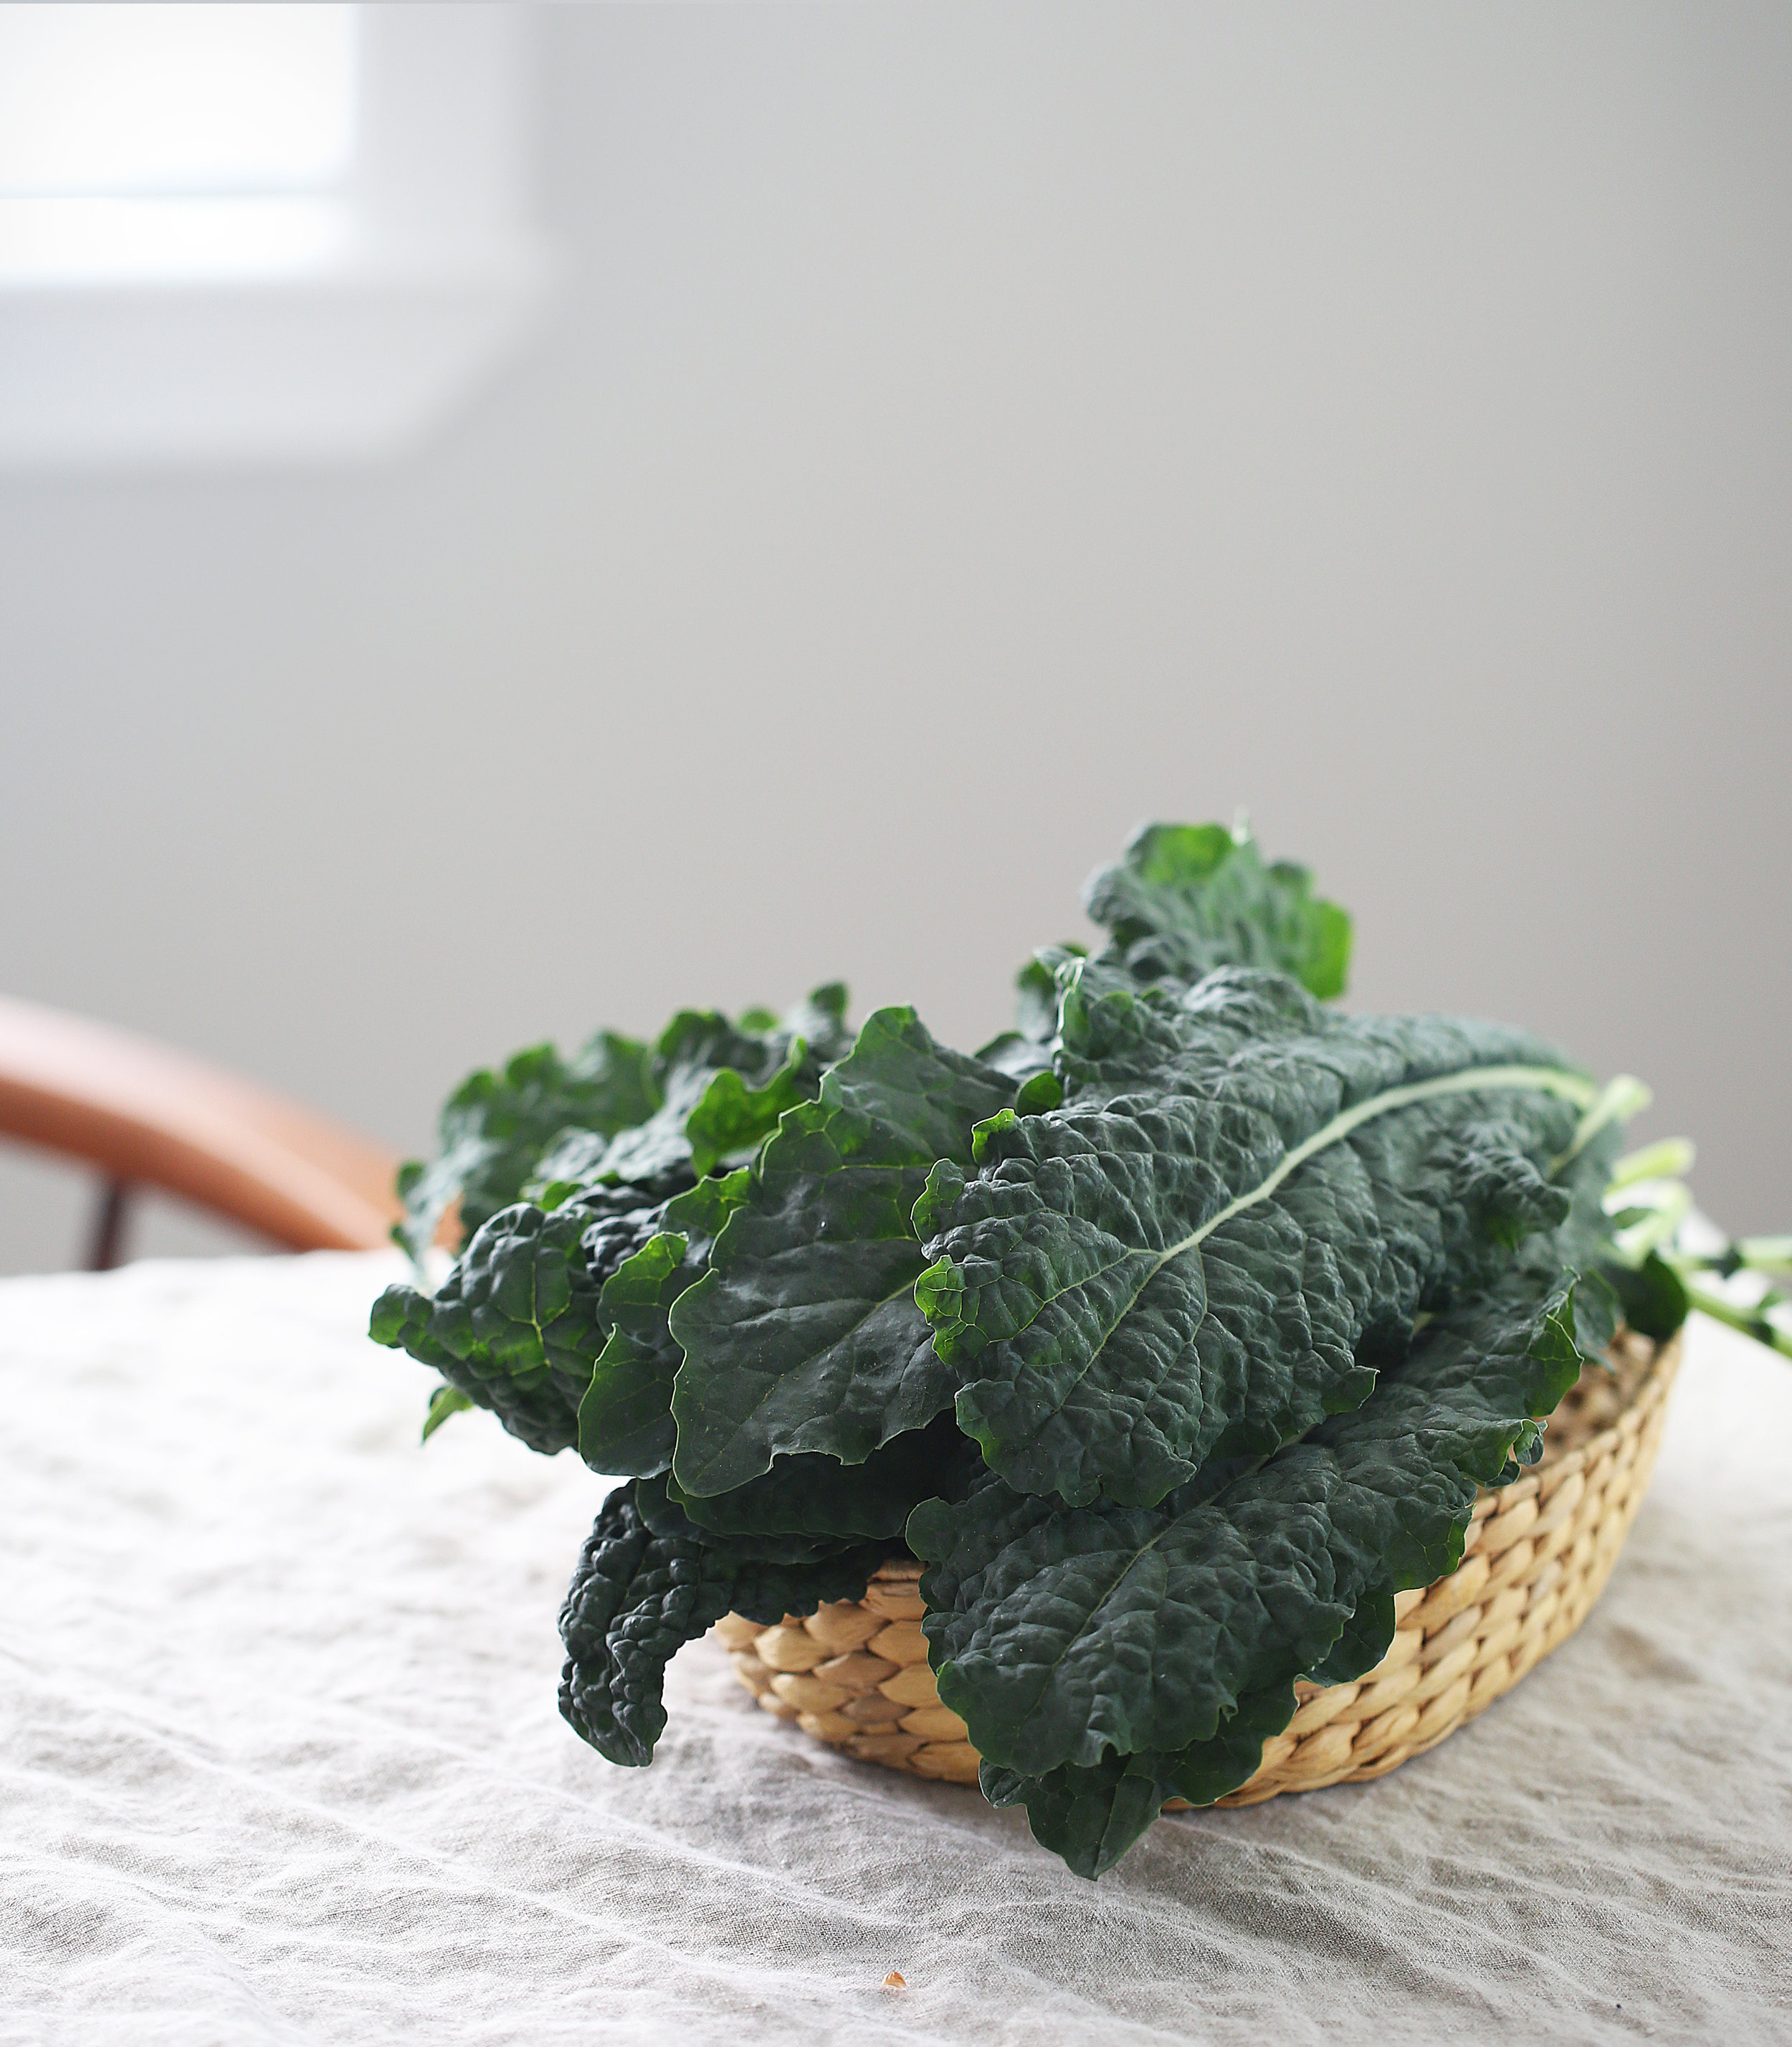 Kale photographed for social media campaign.